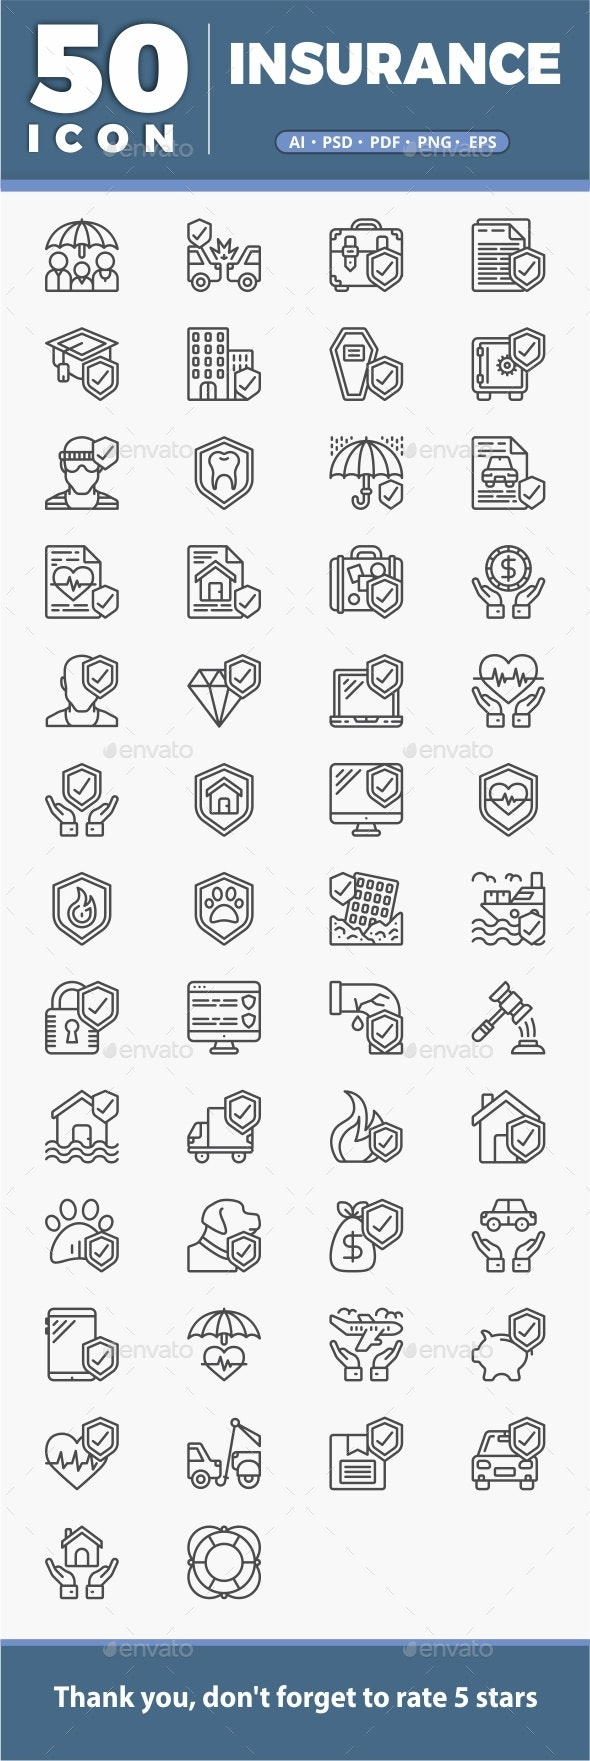 50 Insurance Icon - Icons